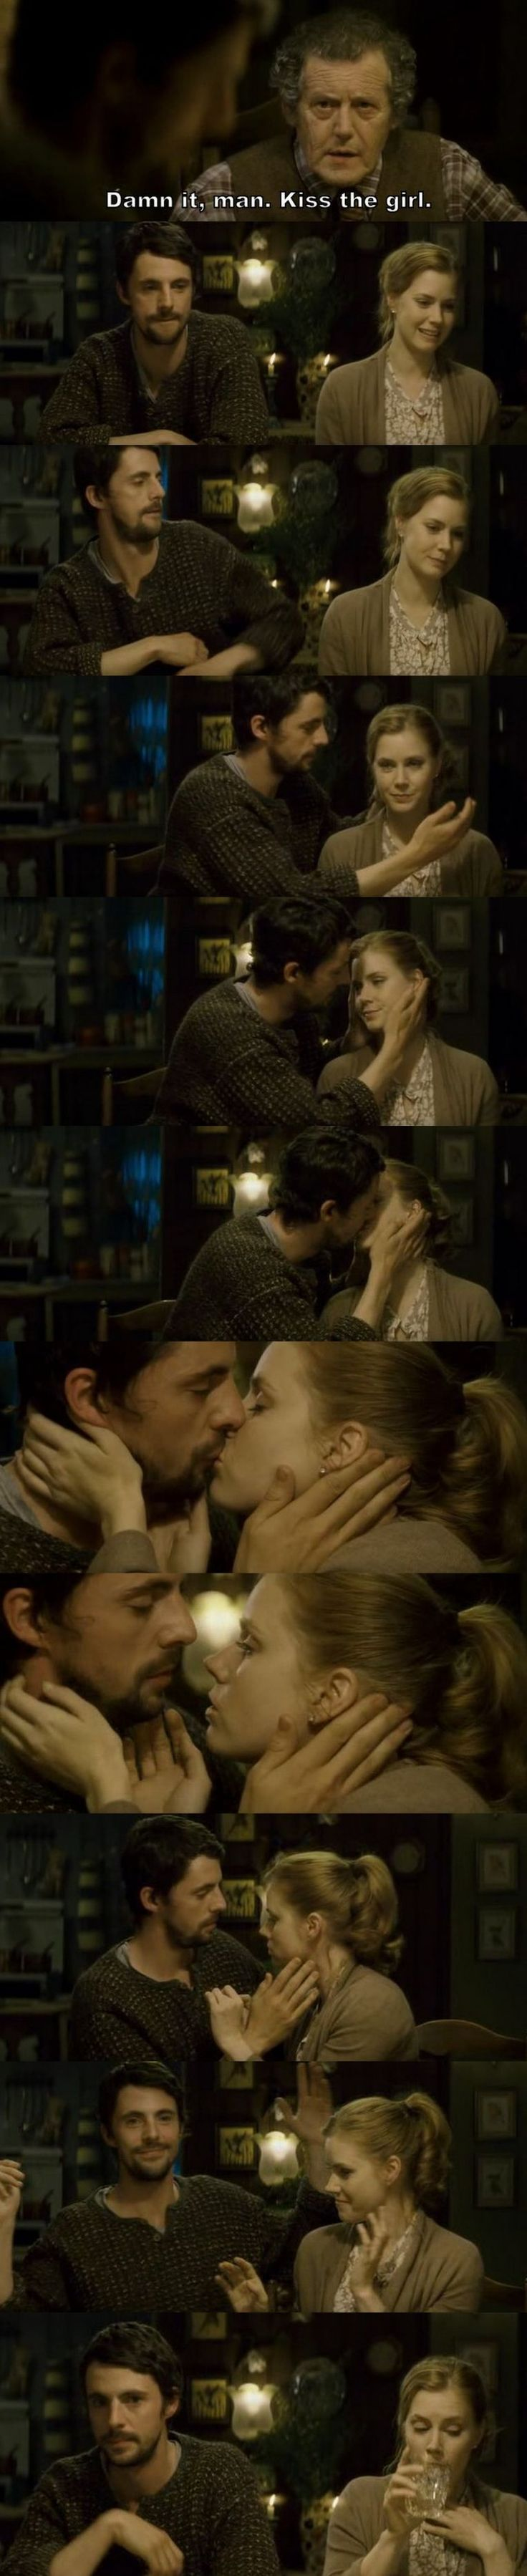 Leap Year - Declan ♥ Anna - First kiss. - Ooooh ma jaaaaaa *.*